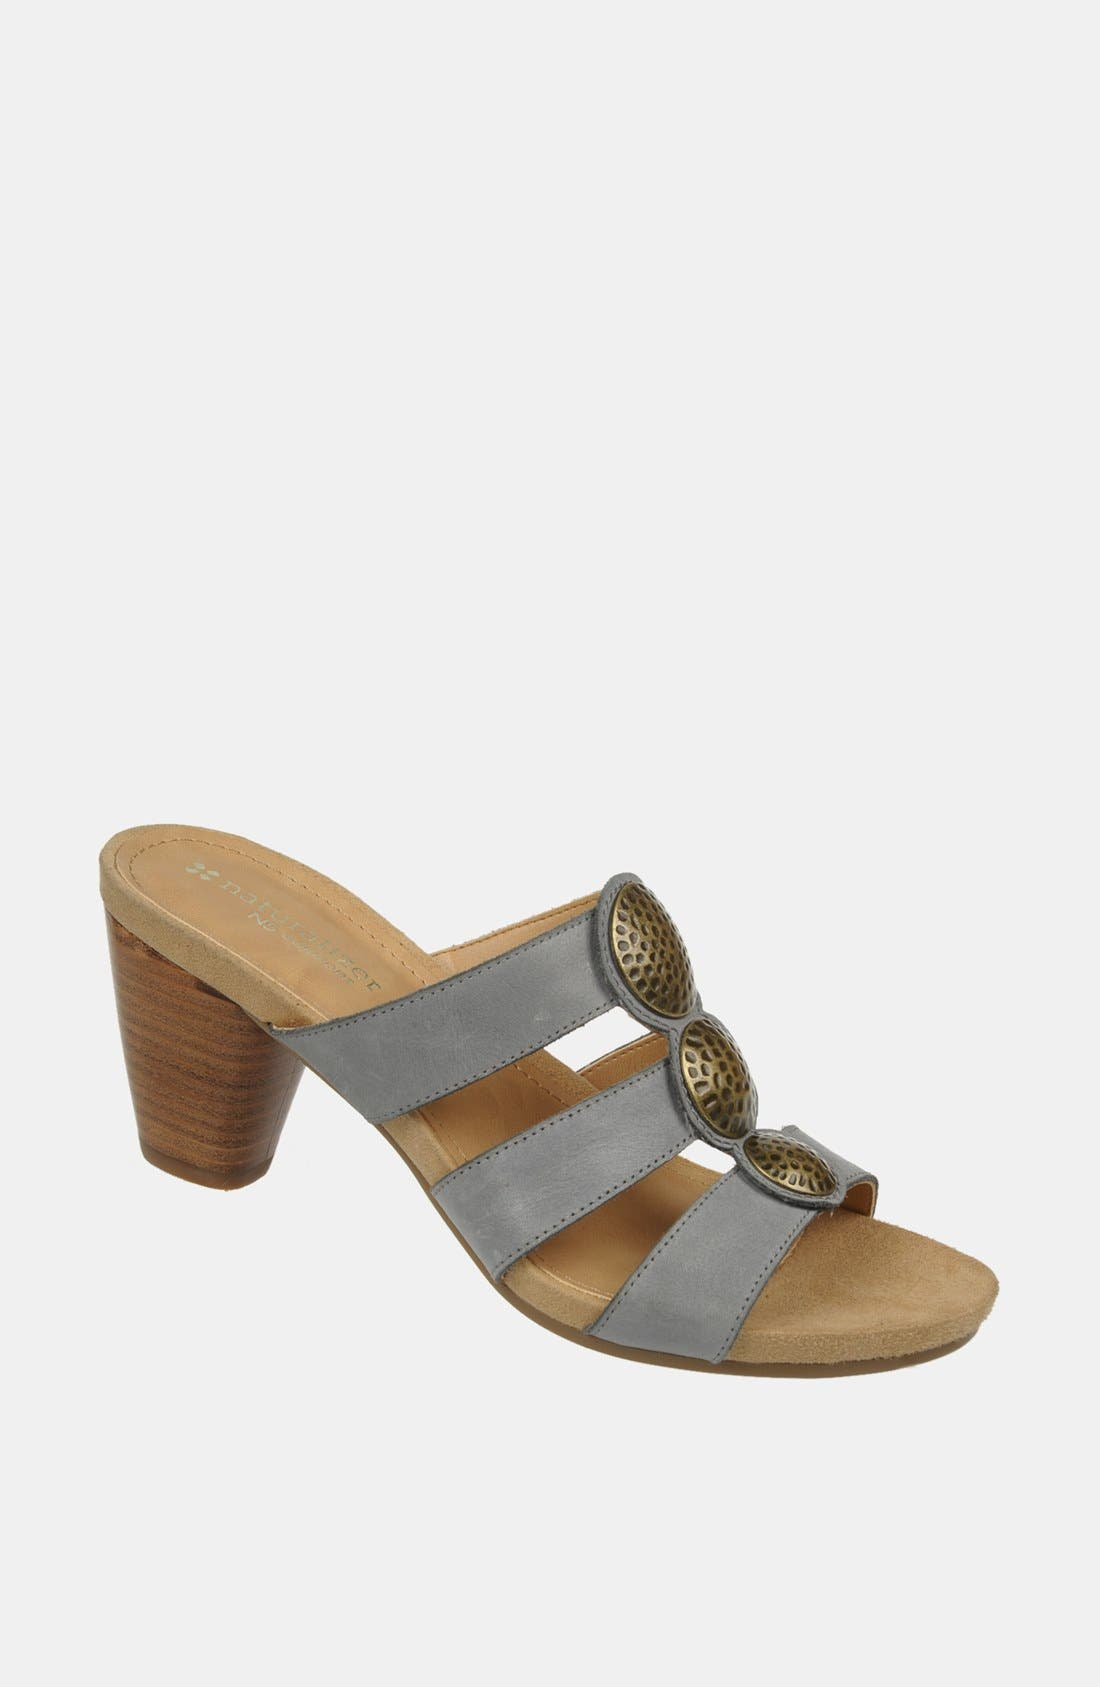 Alternate Image 1 Selected - Naturalizer 'Egypt' Sandal